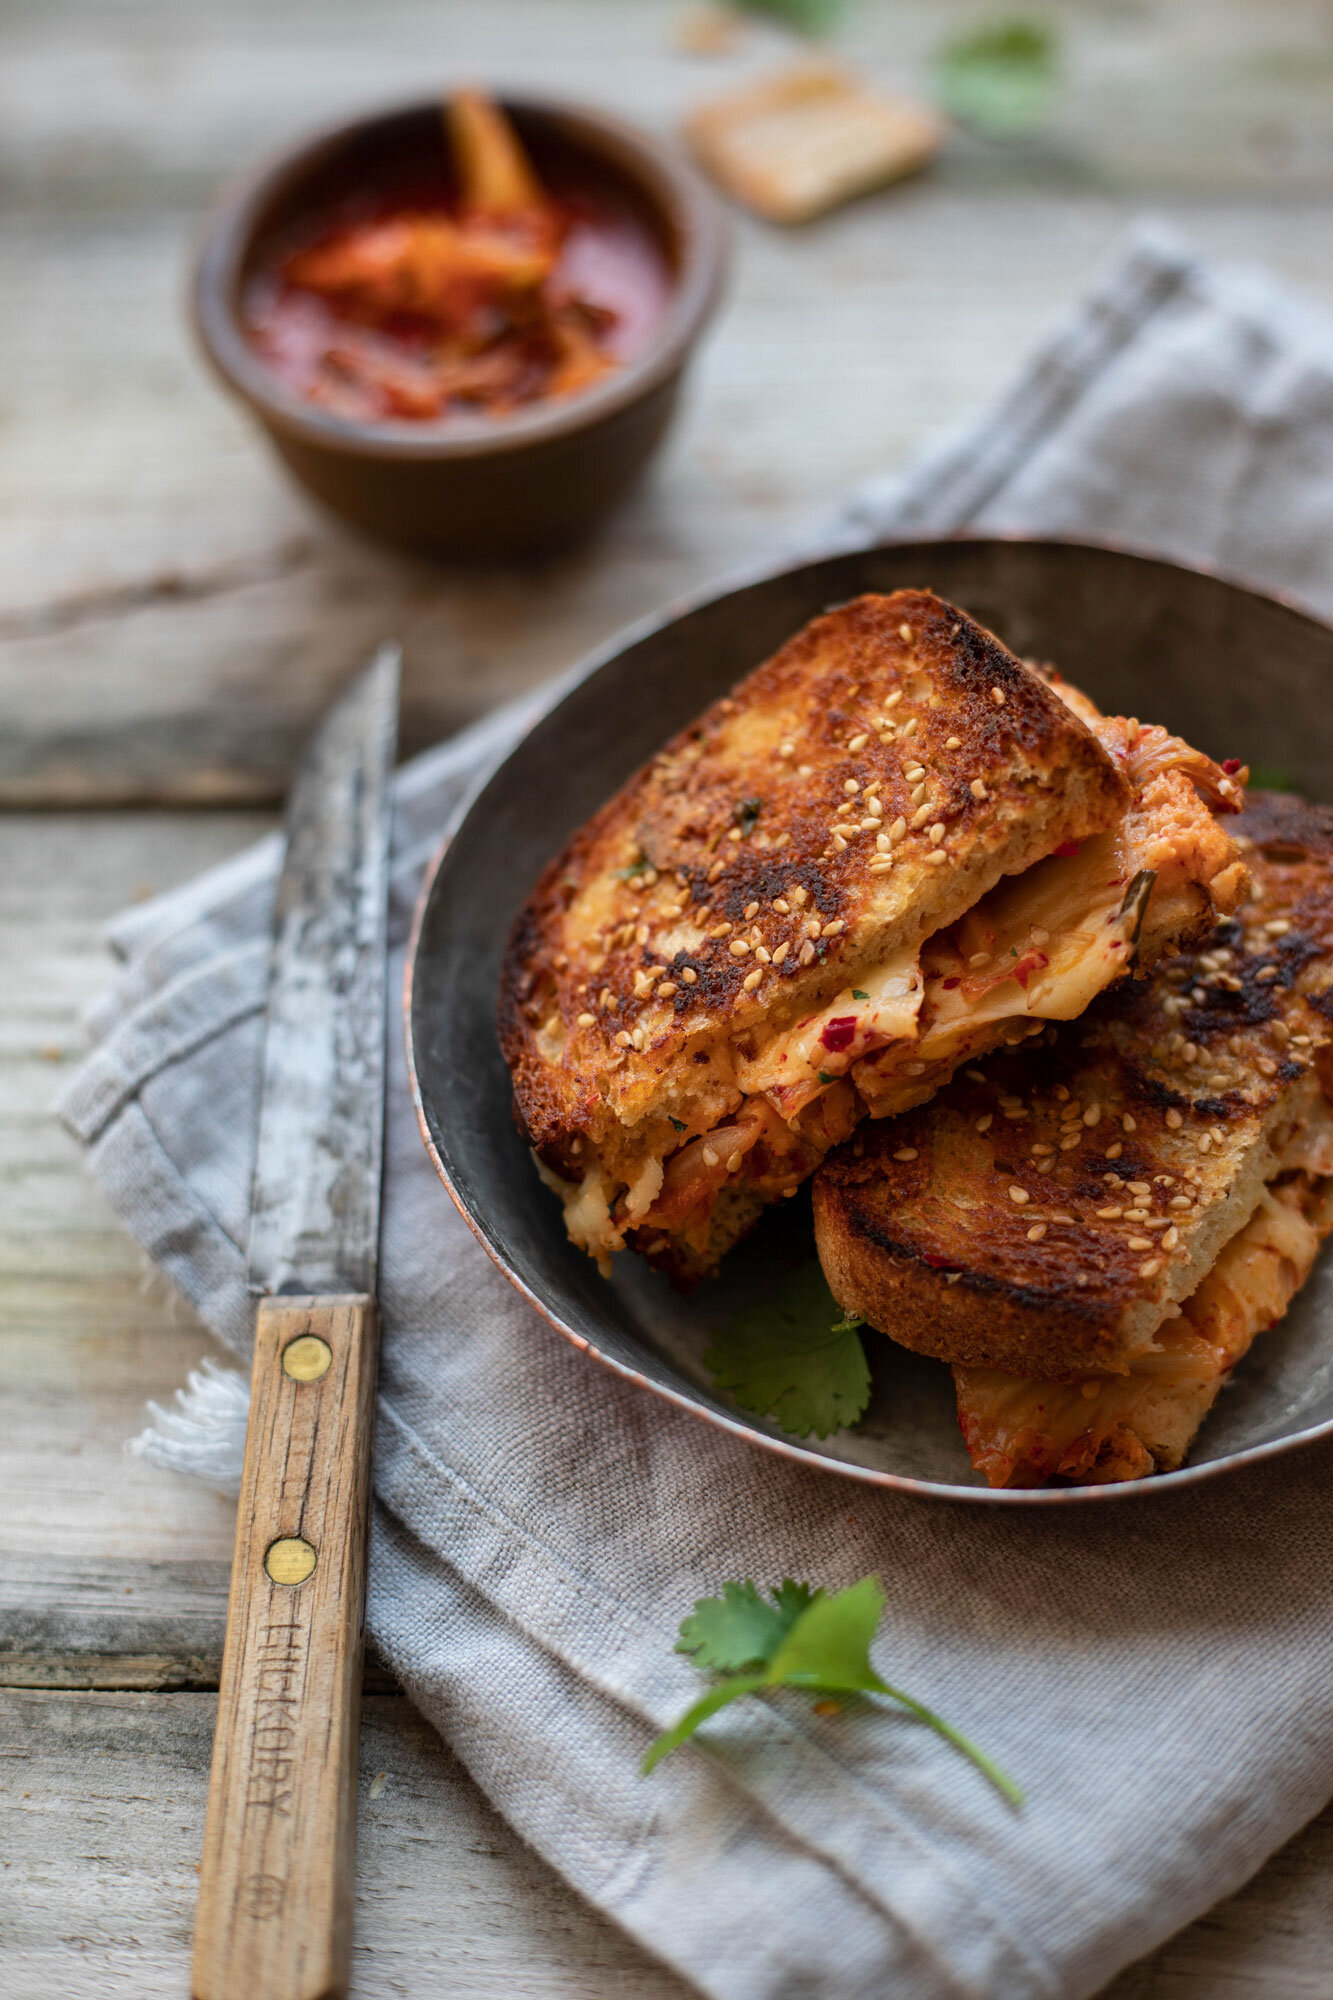 kimchi grilled cheese for pure vegetarian comfort food